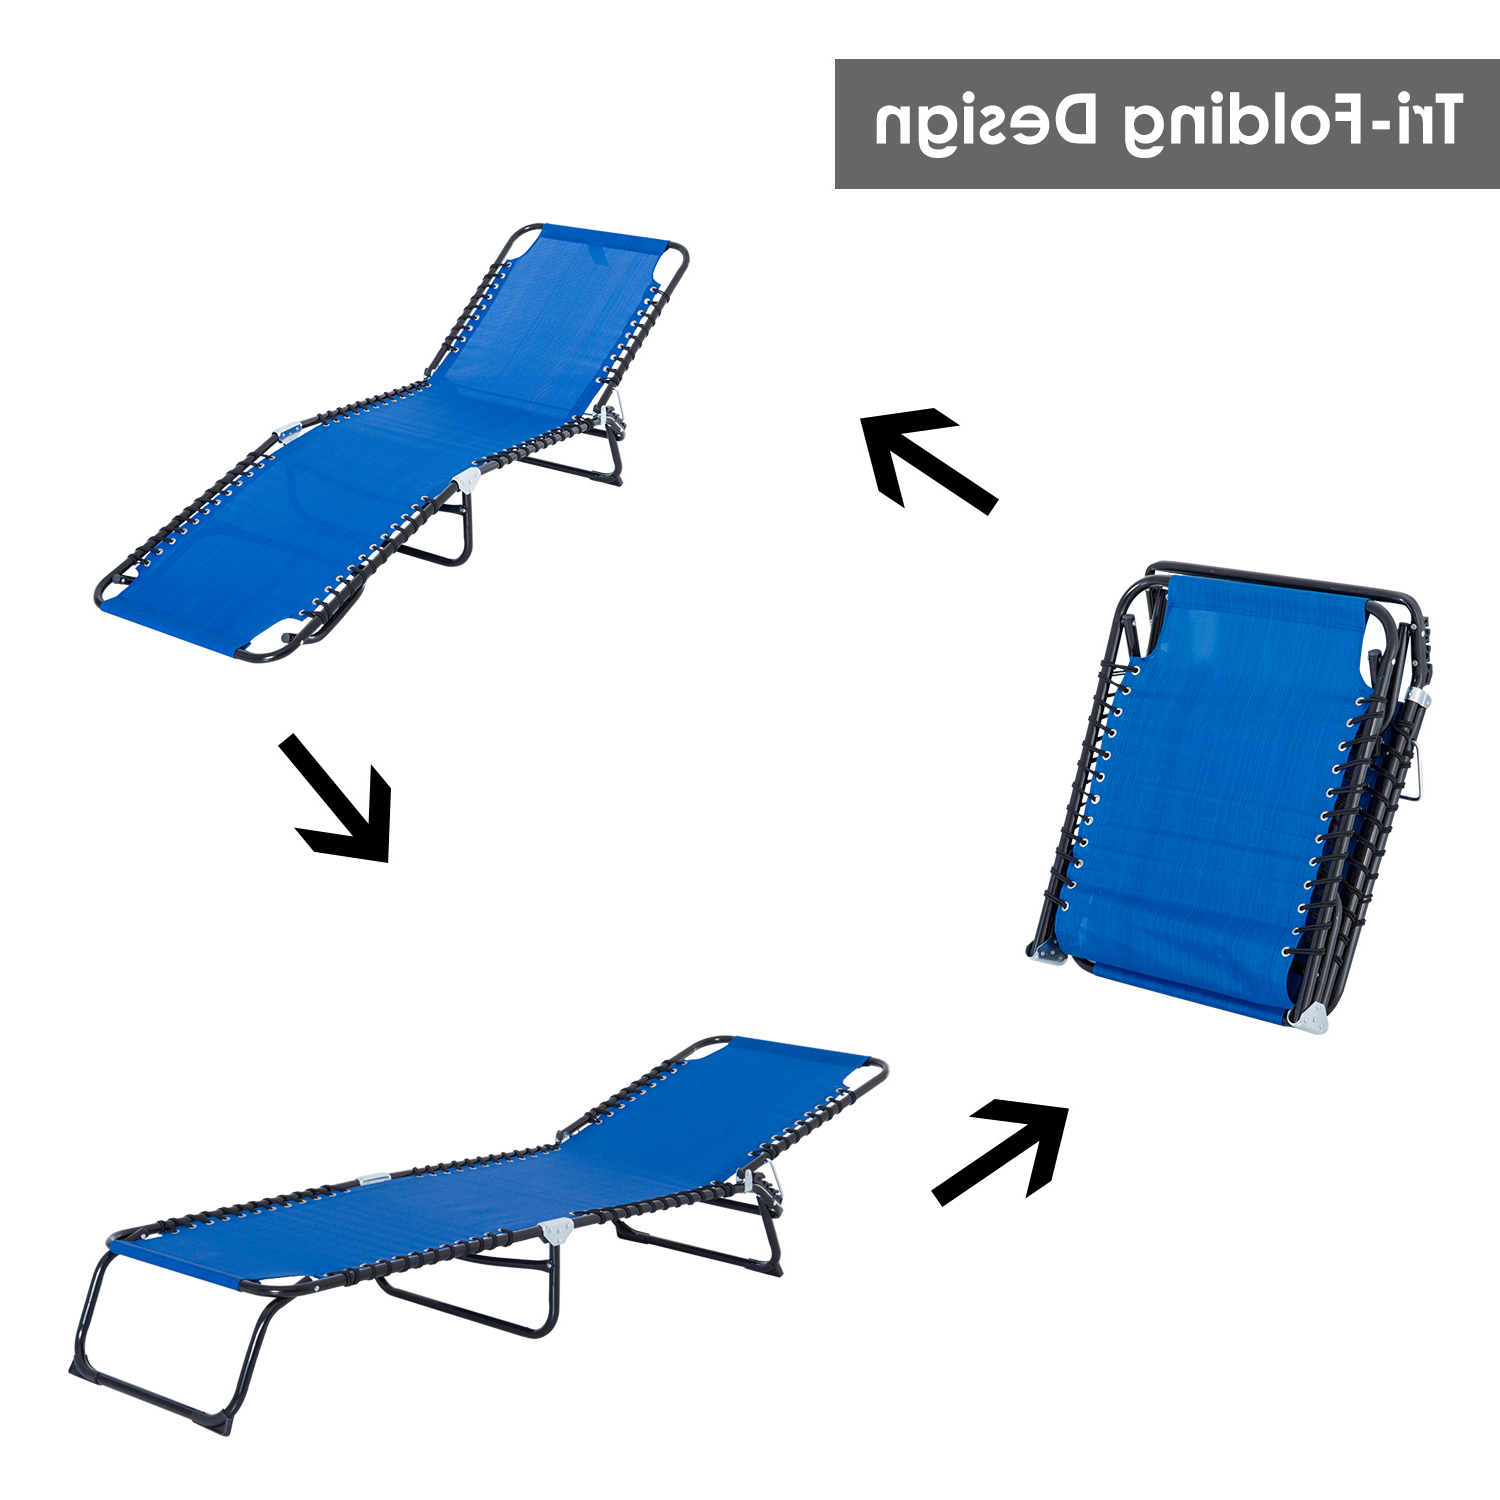 Most Current Outsunny Portable 3 Position Reclining Folding Beach Chaise Lounge Chair For 3 Position Portable Reclining Beach Chaise Lounges (View 21 of 25)